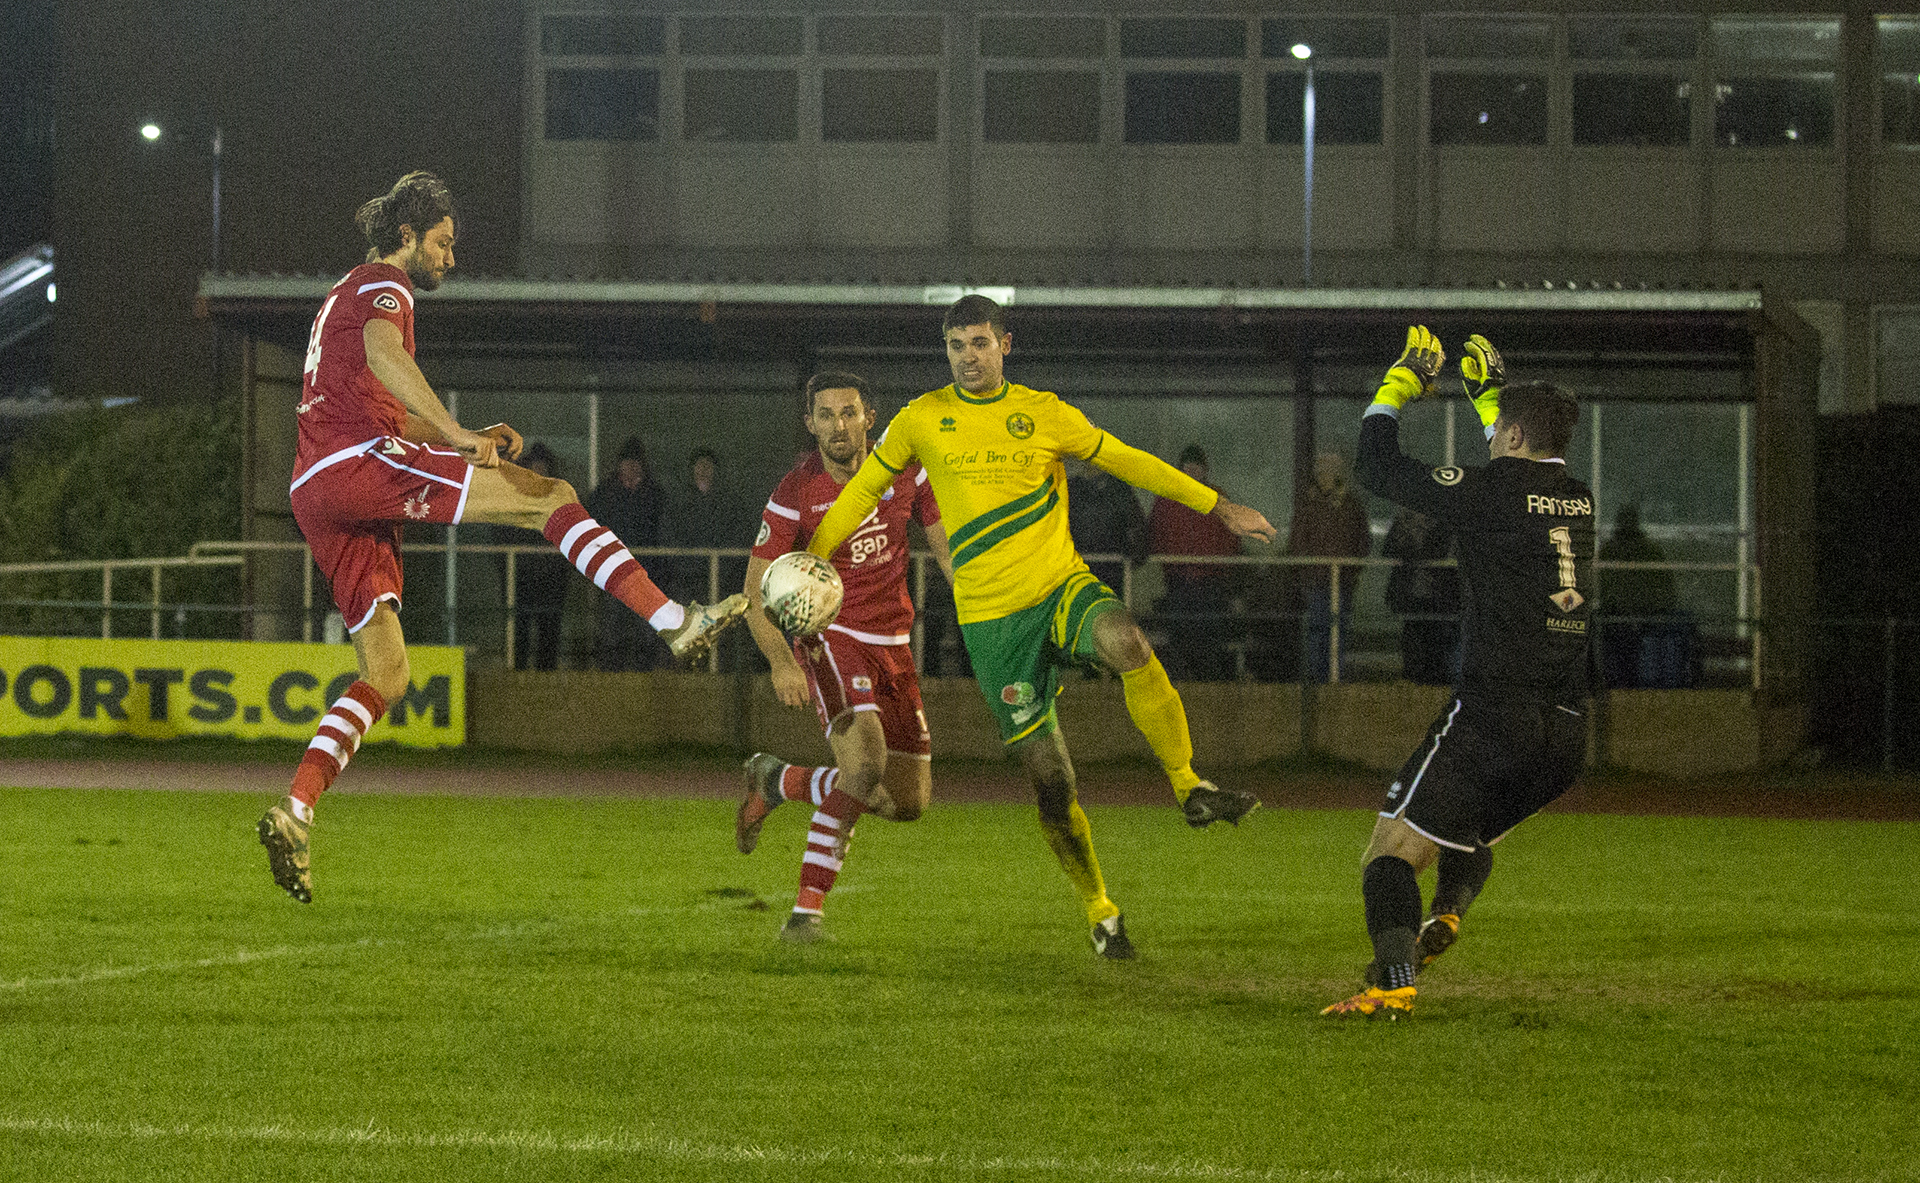 Adam Barton beats the Caernarfon defence to the ball to get on the scoresheet | © NCM Media